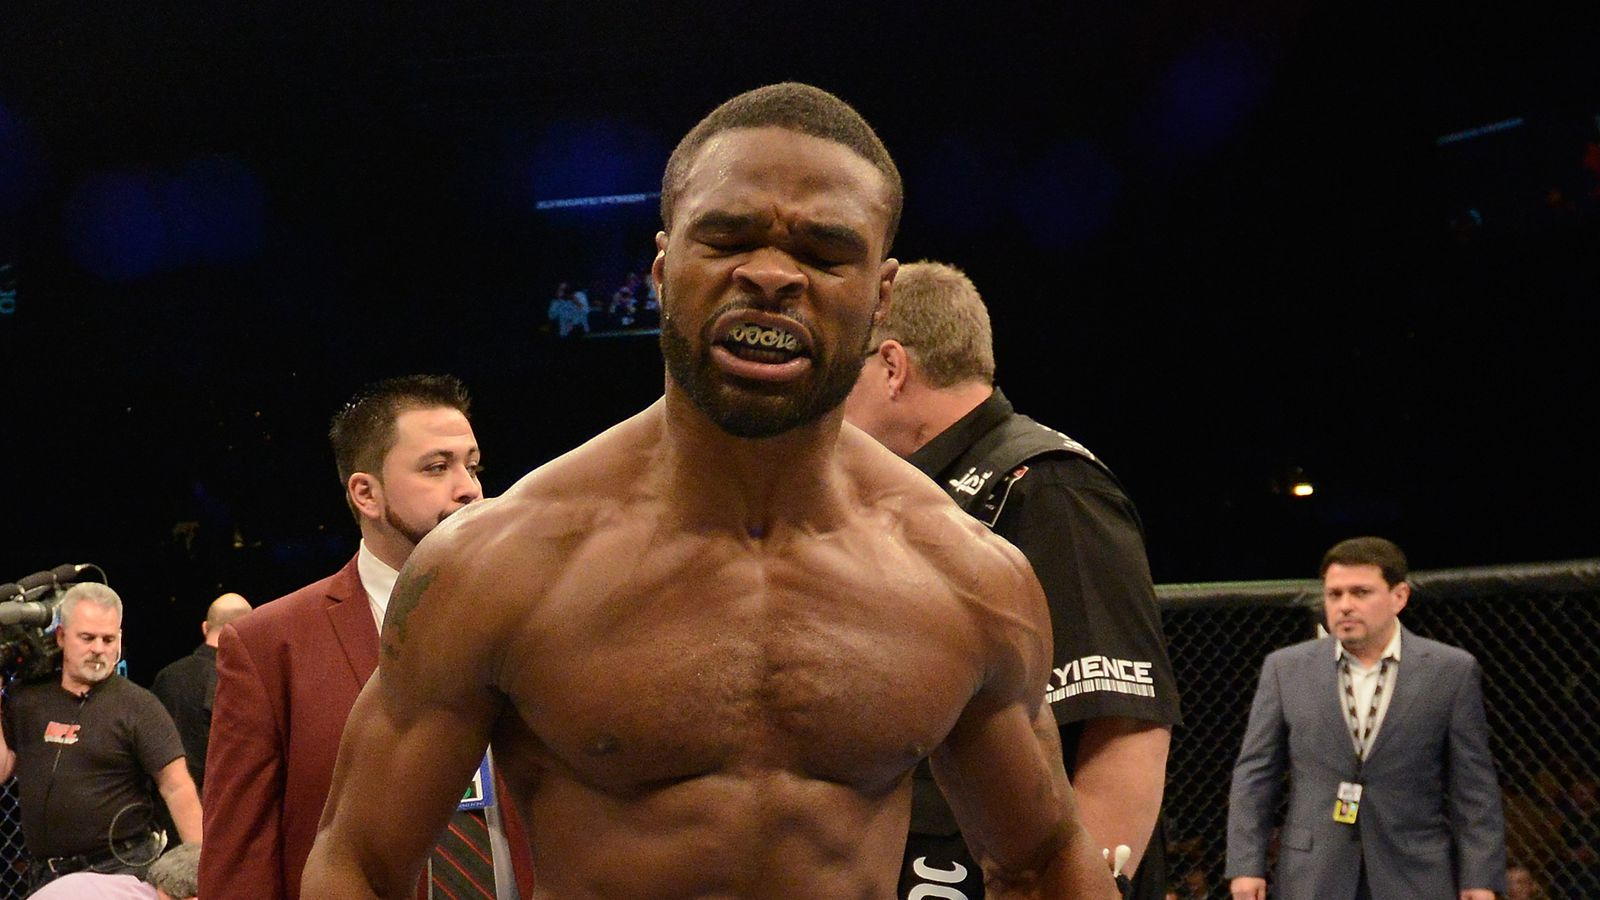 Woodley Calls Out Canelo: 'If I Land, He's Going Down'